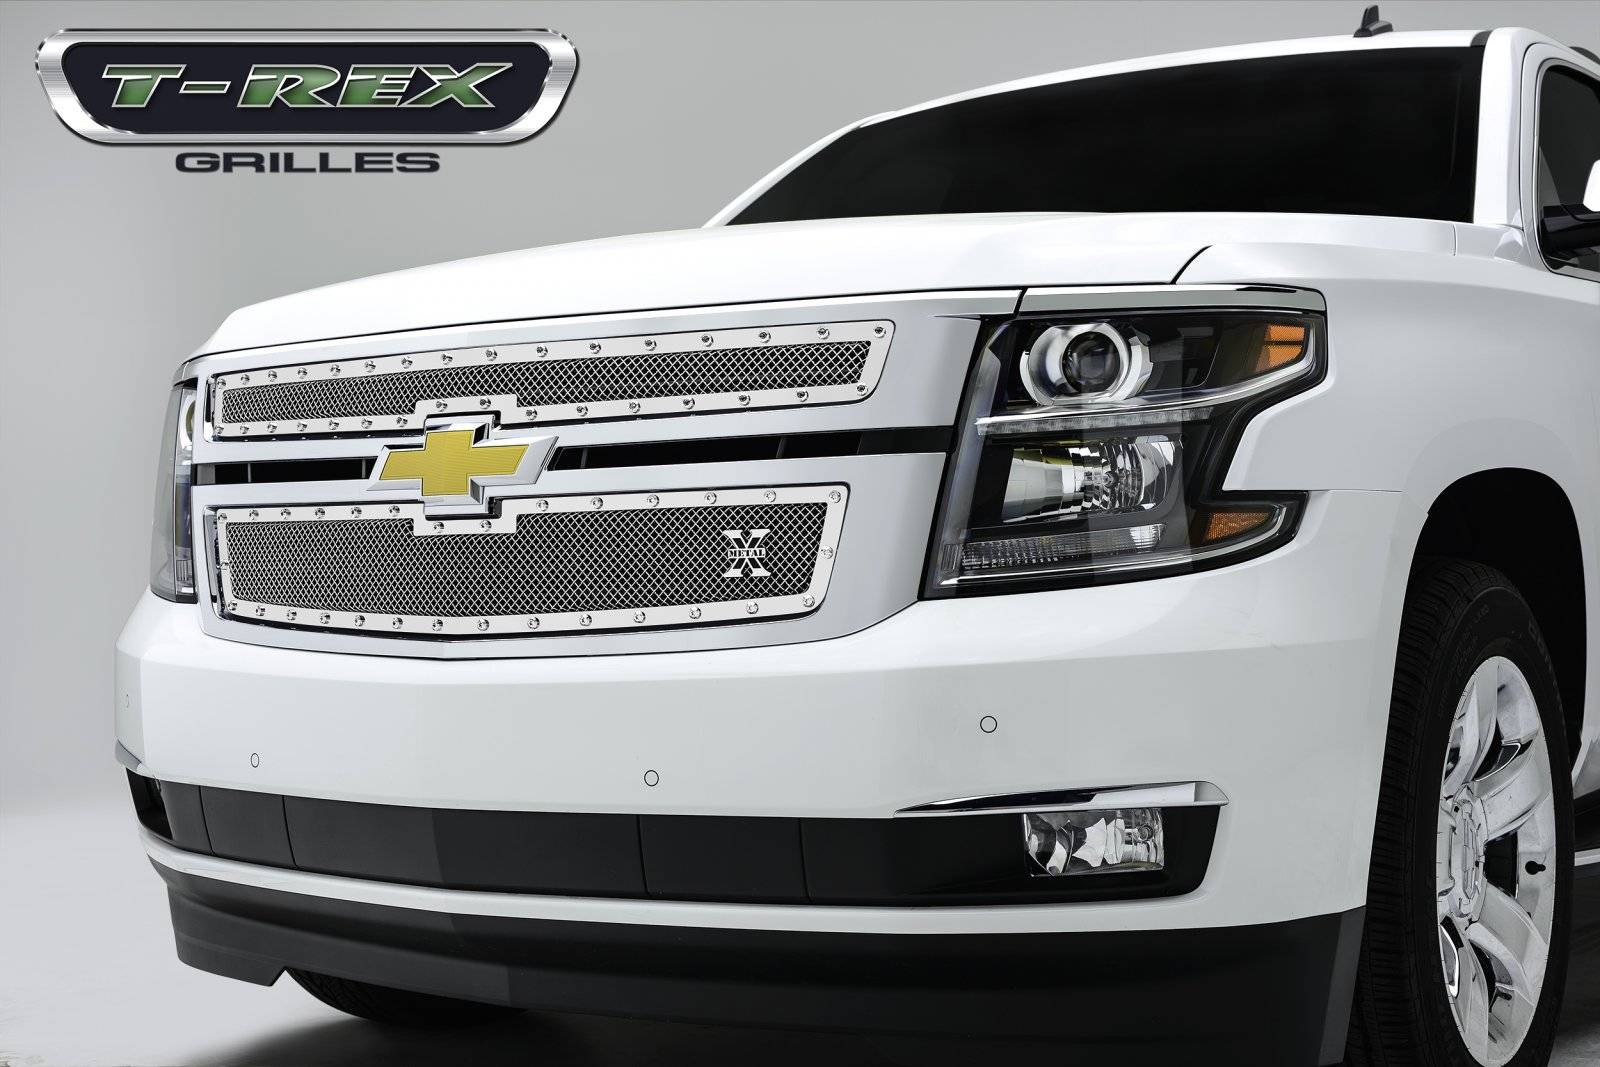 T-REX Grilles - 2015-2020 Suburban and Tahoe LT, LTZ X-Metal Grille, Polished, 2 Pc, Overlay, Chrome Studs - PN #6710550